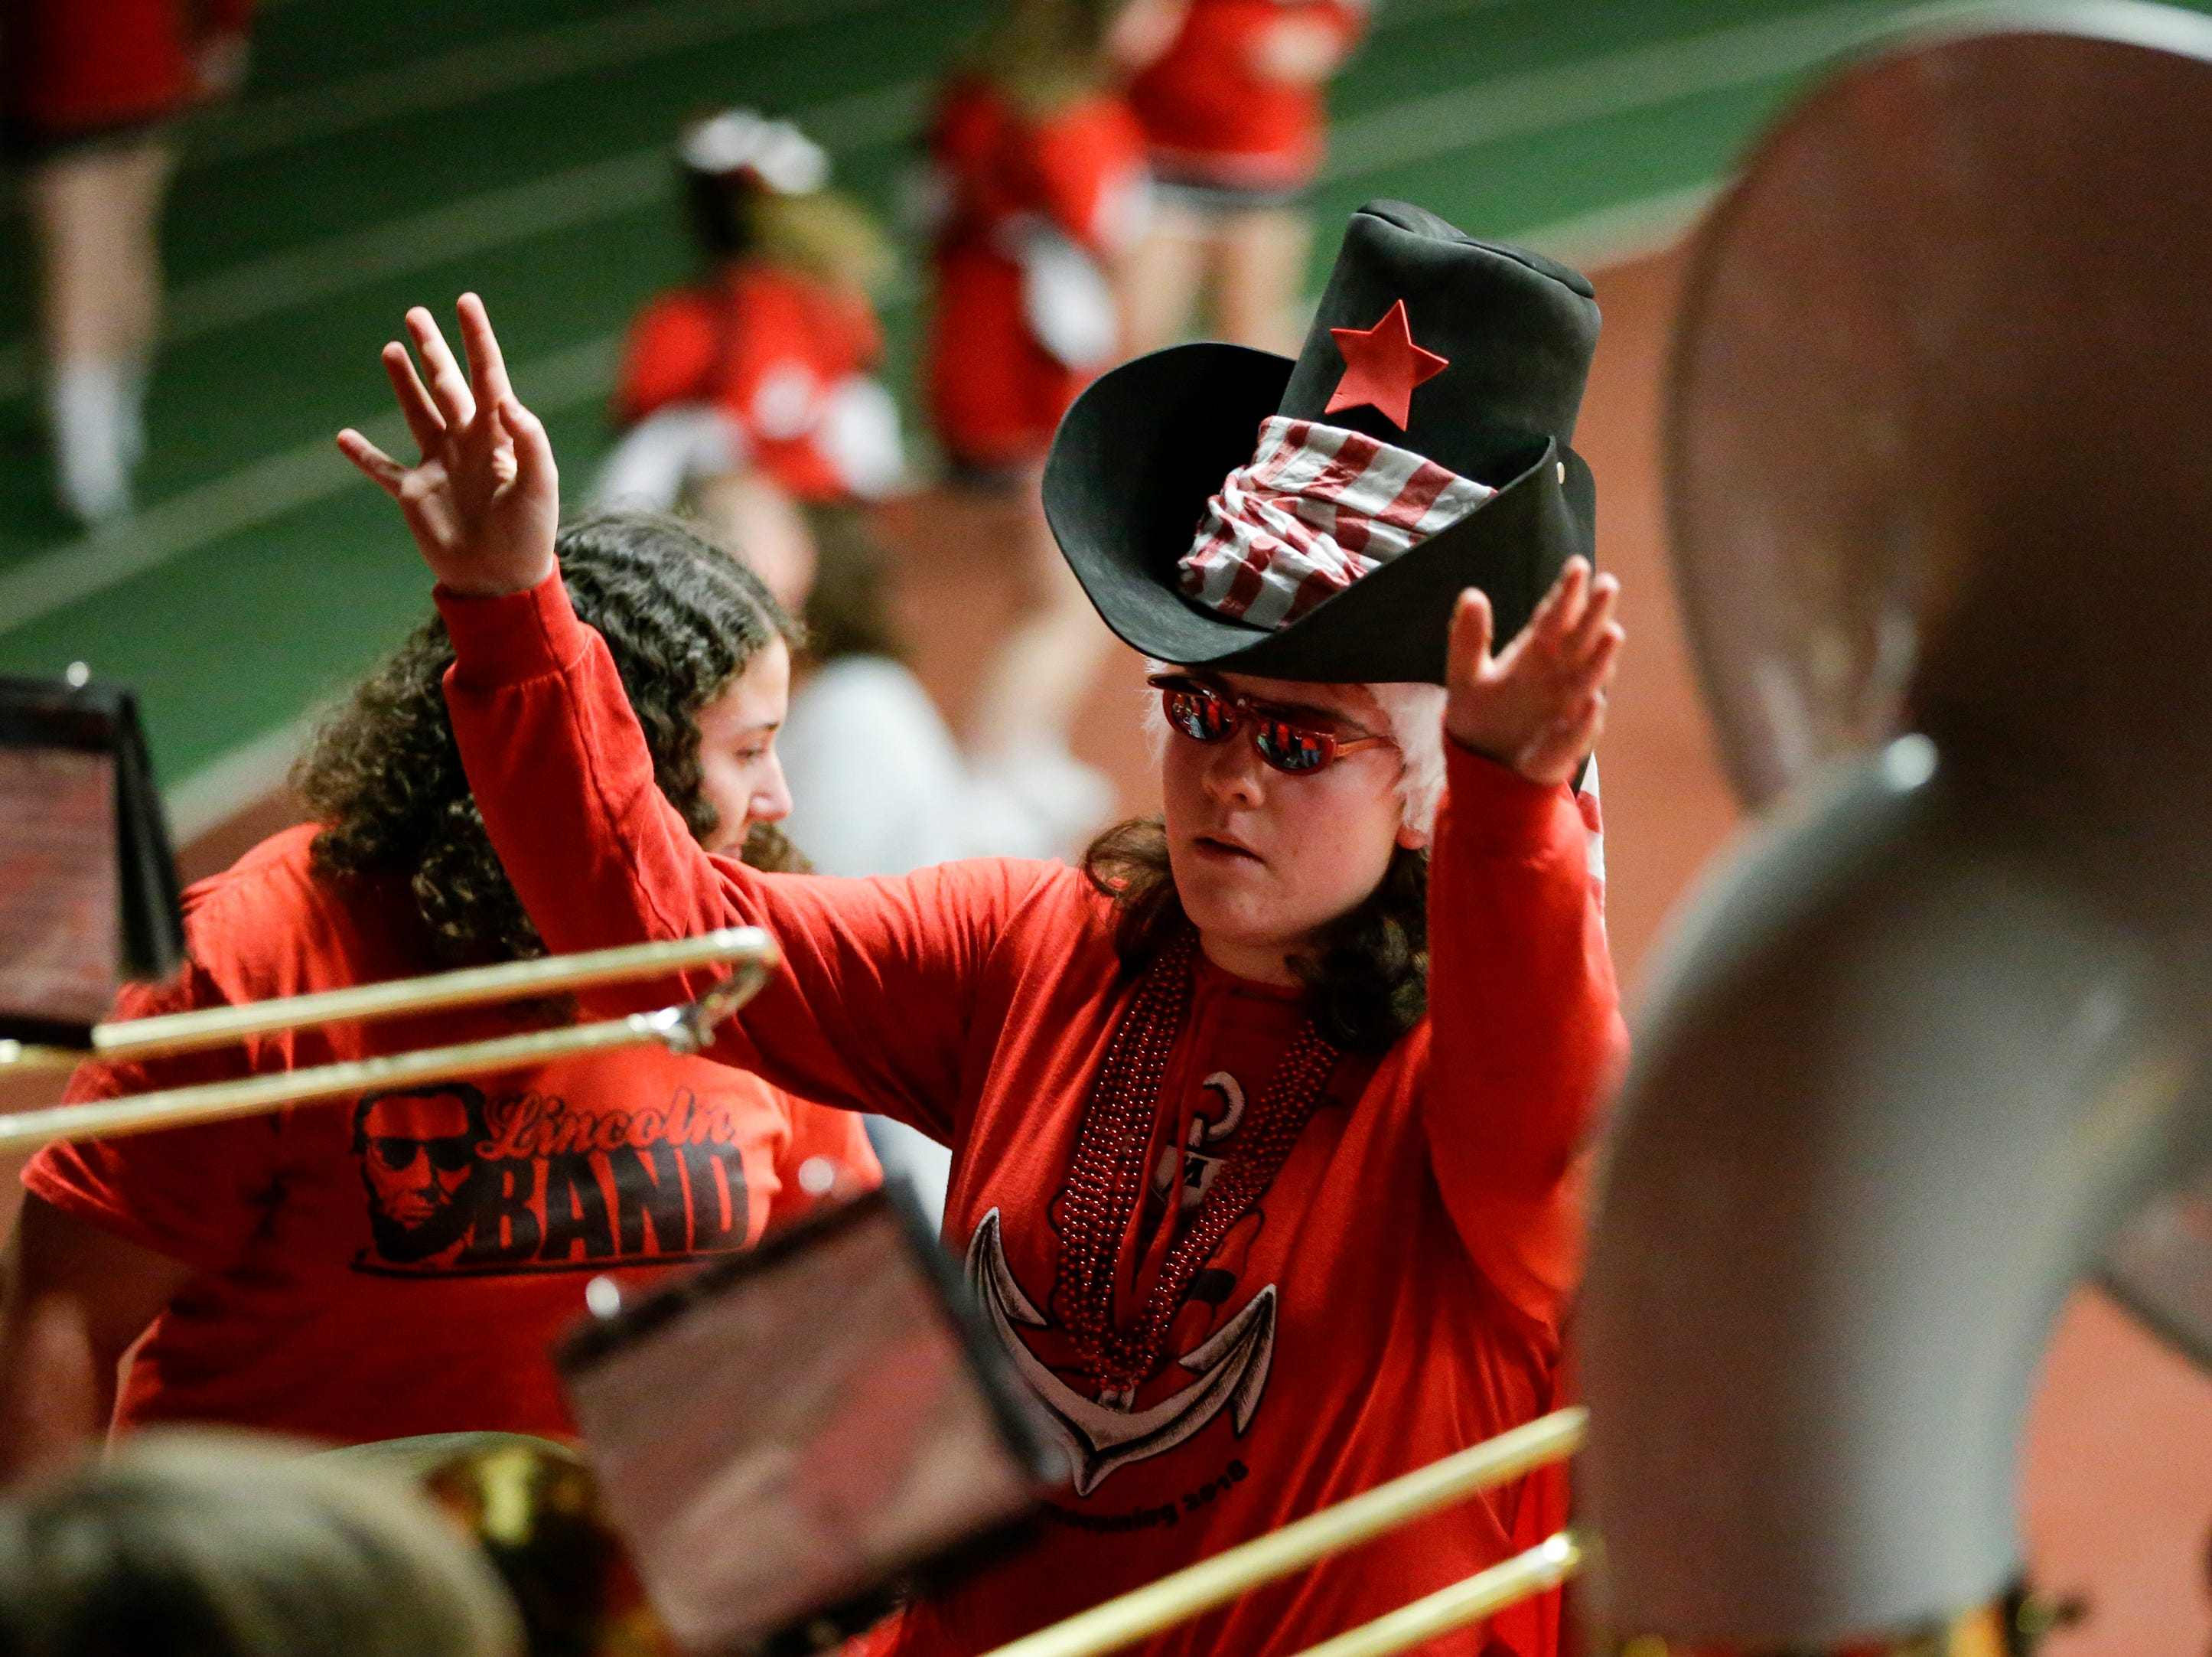 Manitowoc Lincoln's band leader leads the band before a girls basketball FRCC matchup against Sheboygan South at Manitowoc Lincoln High School Friday, January 4, 2019, in Manitowoc, Wis. Joshua Clark/USA TODAY NETWORK-Wisconsin